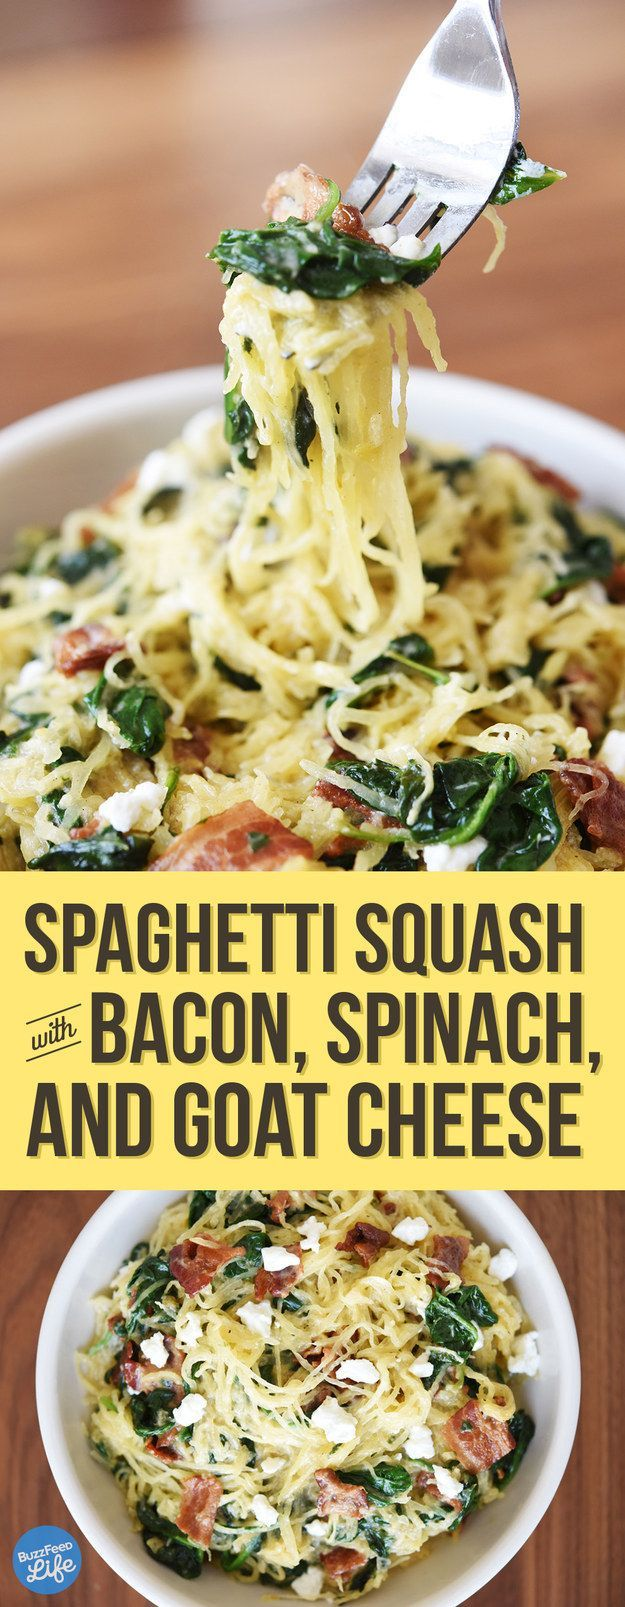 discount 70 columbia heights 1  Spaghetti Squash With Bacon  Spinach  and Goat Cheese   5 Quick And Easy Dinners To Make This Week